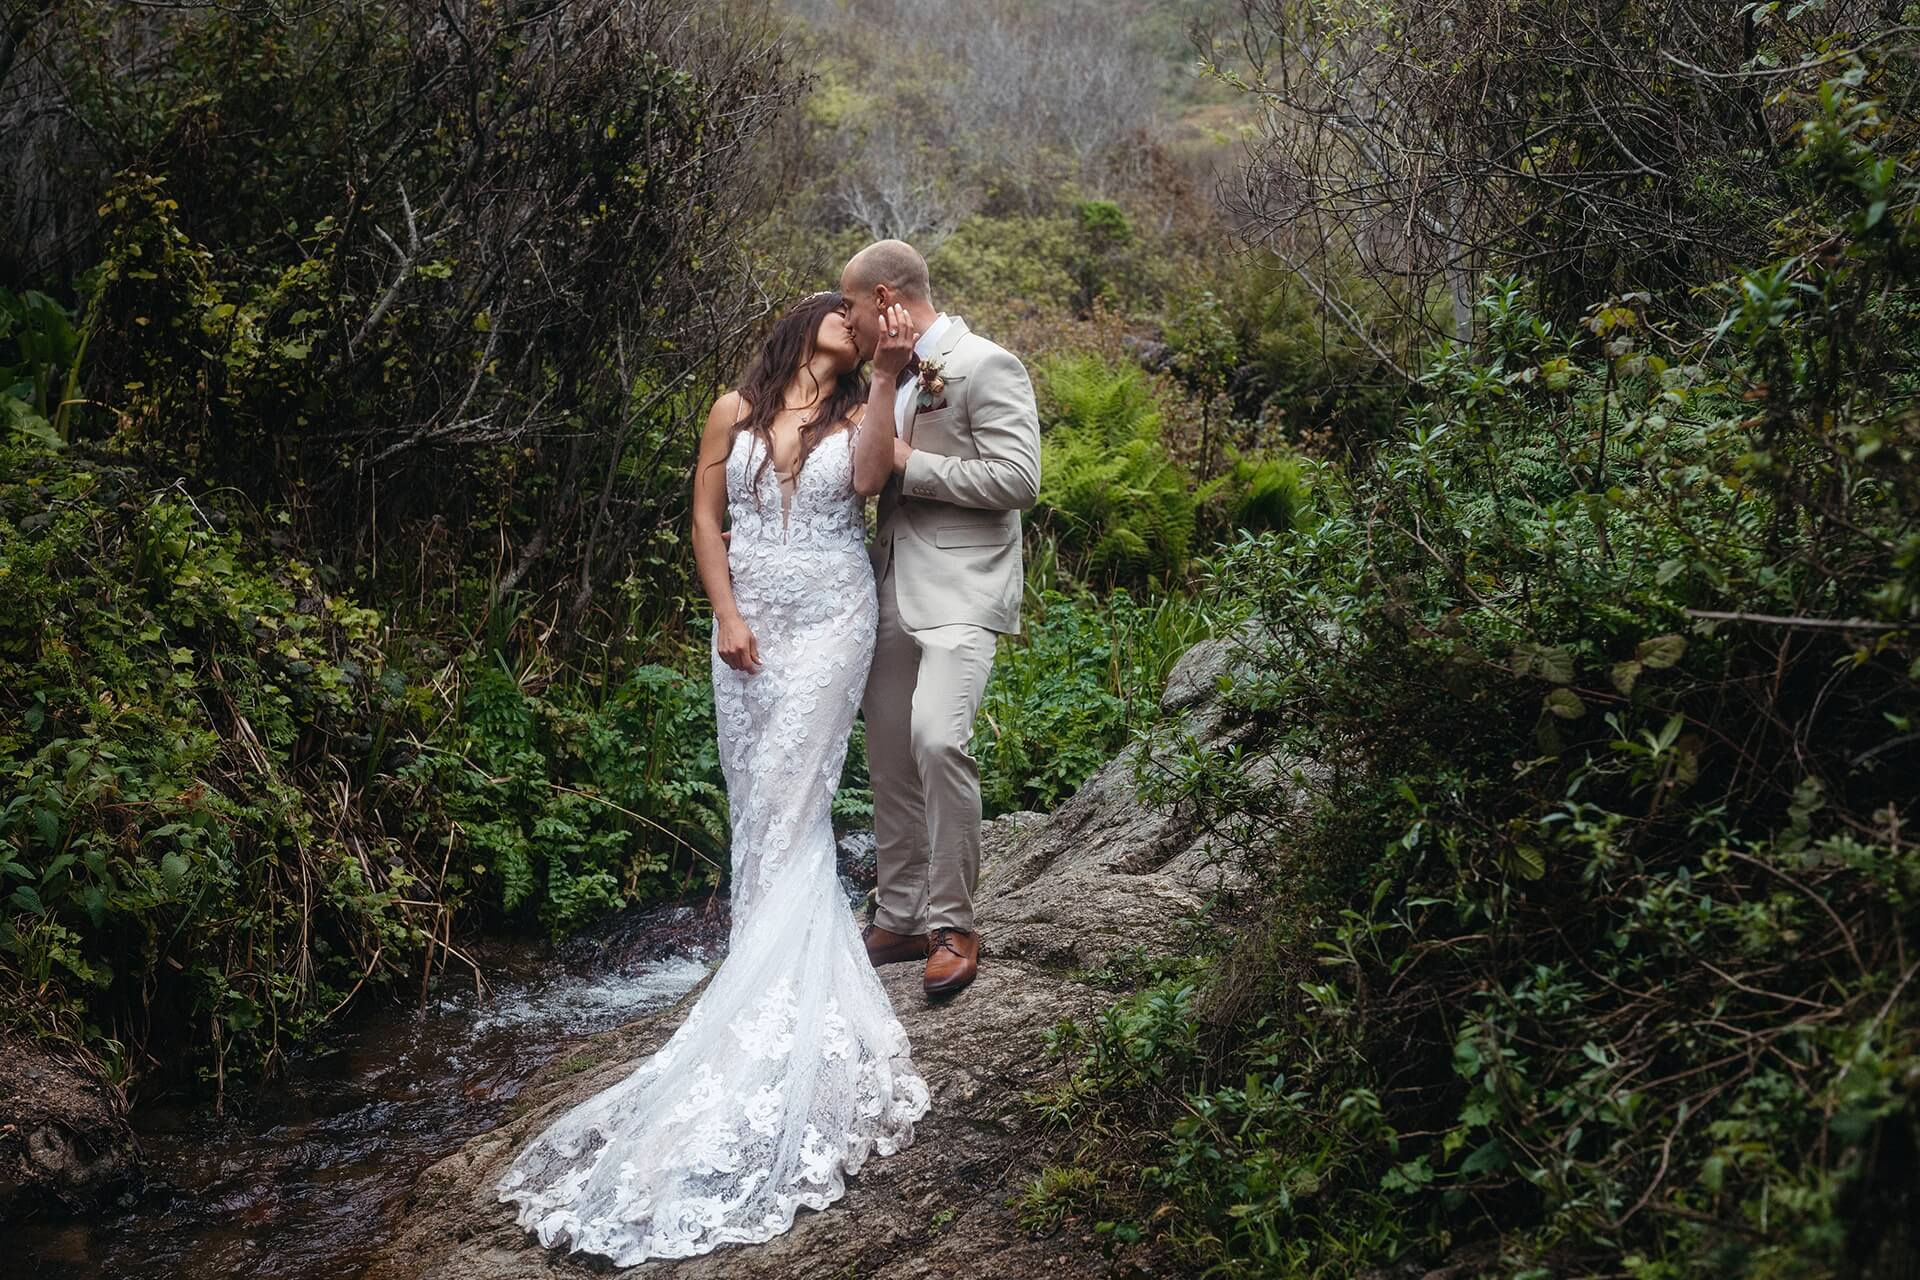 Big Sur - CA Destination Wedding Photographer   Just married and finally alone